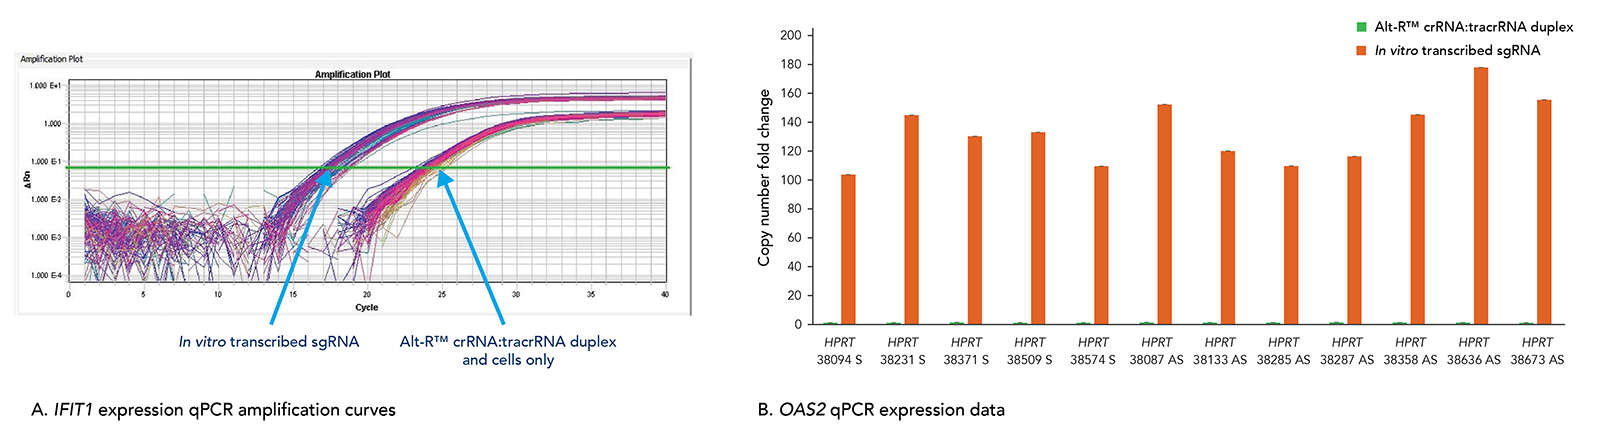 CRISPR_cas9_perf_fig_6